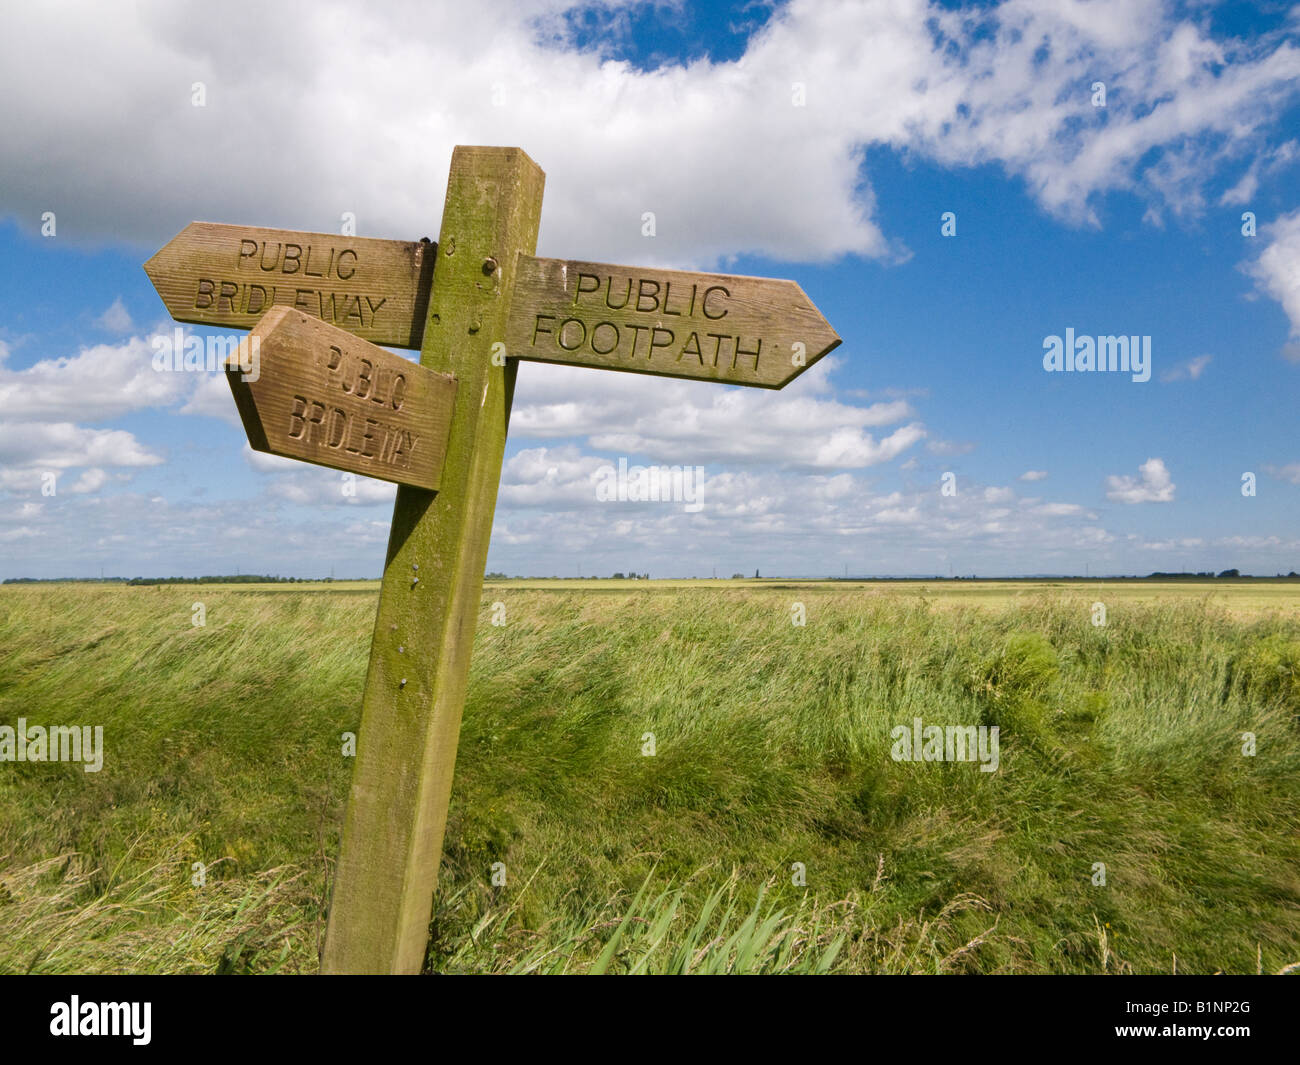 Footpath signpost sign indicating public footpaths and bridleways, Yorkshire, UK - Stock Image